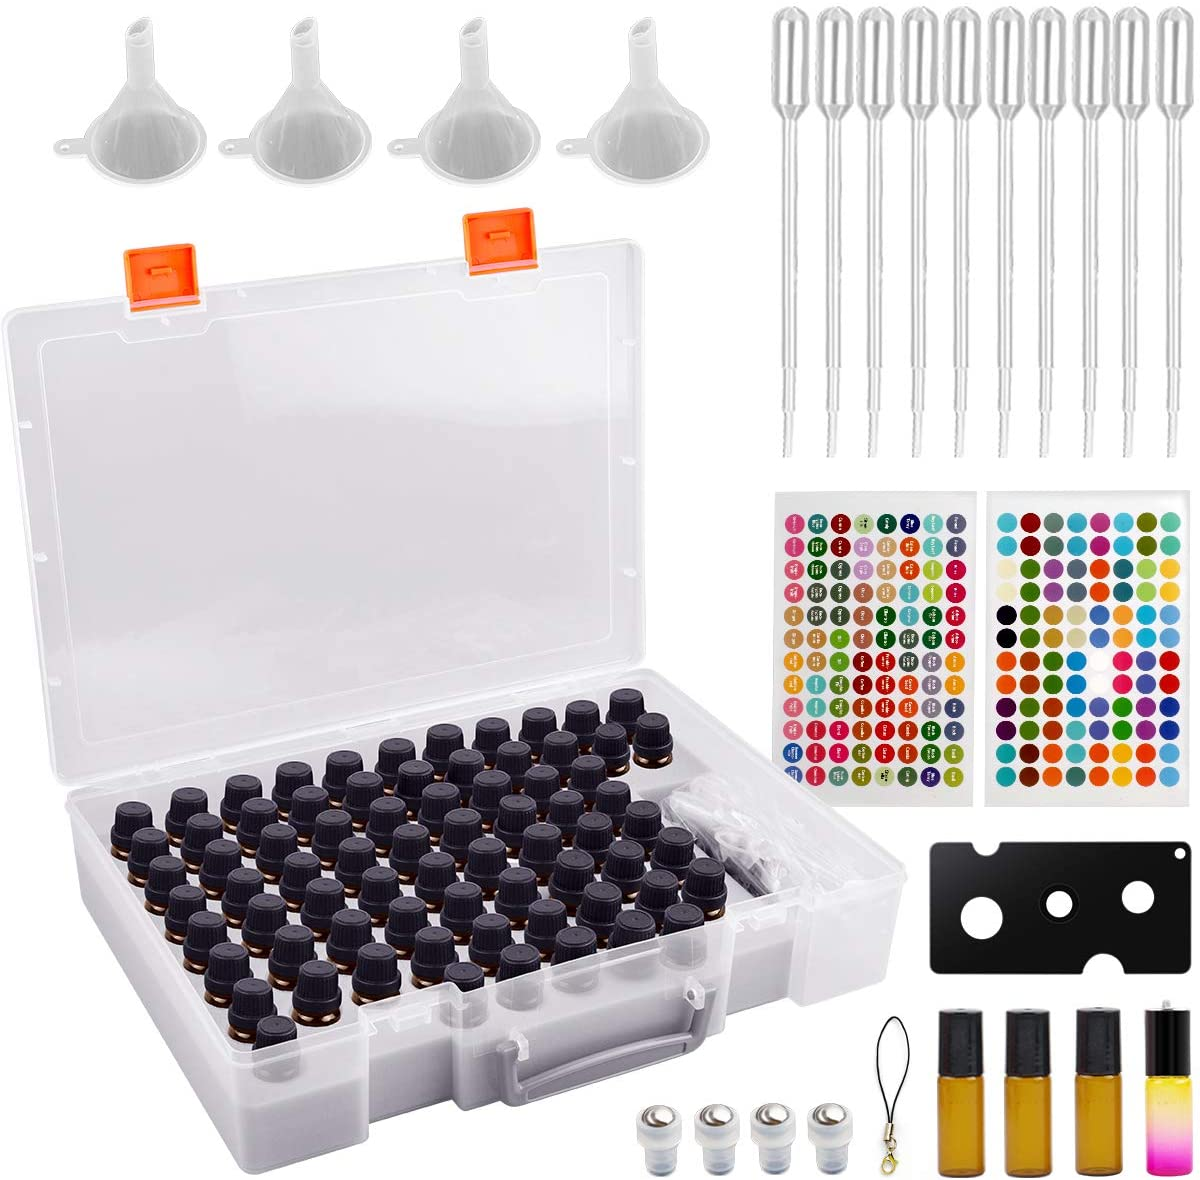 Essential Oil Storage Case Contains 73 Bottles and accessories with Stickers, Opener, Funnels, Pipettes, Bottles Organizer Holder Container (Not Include Bottles)